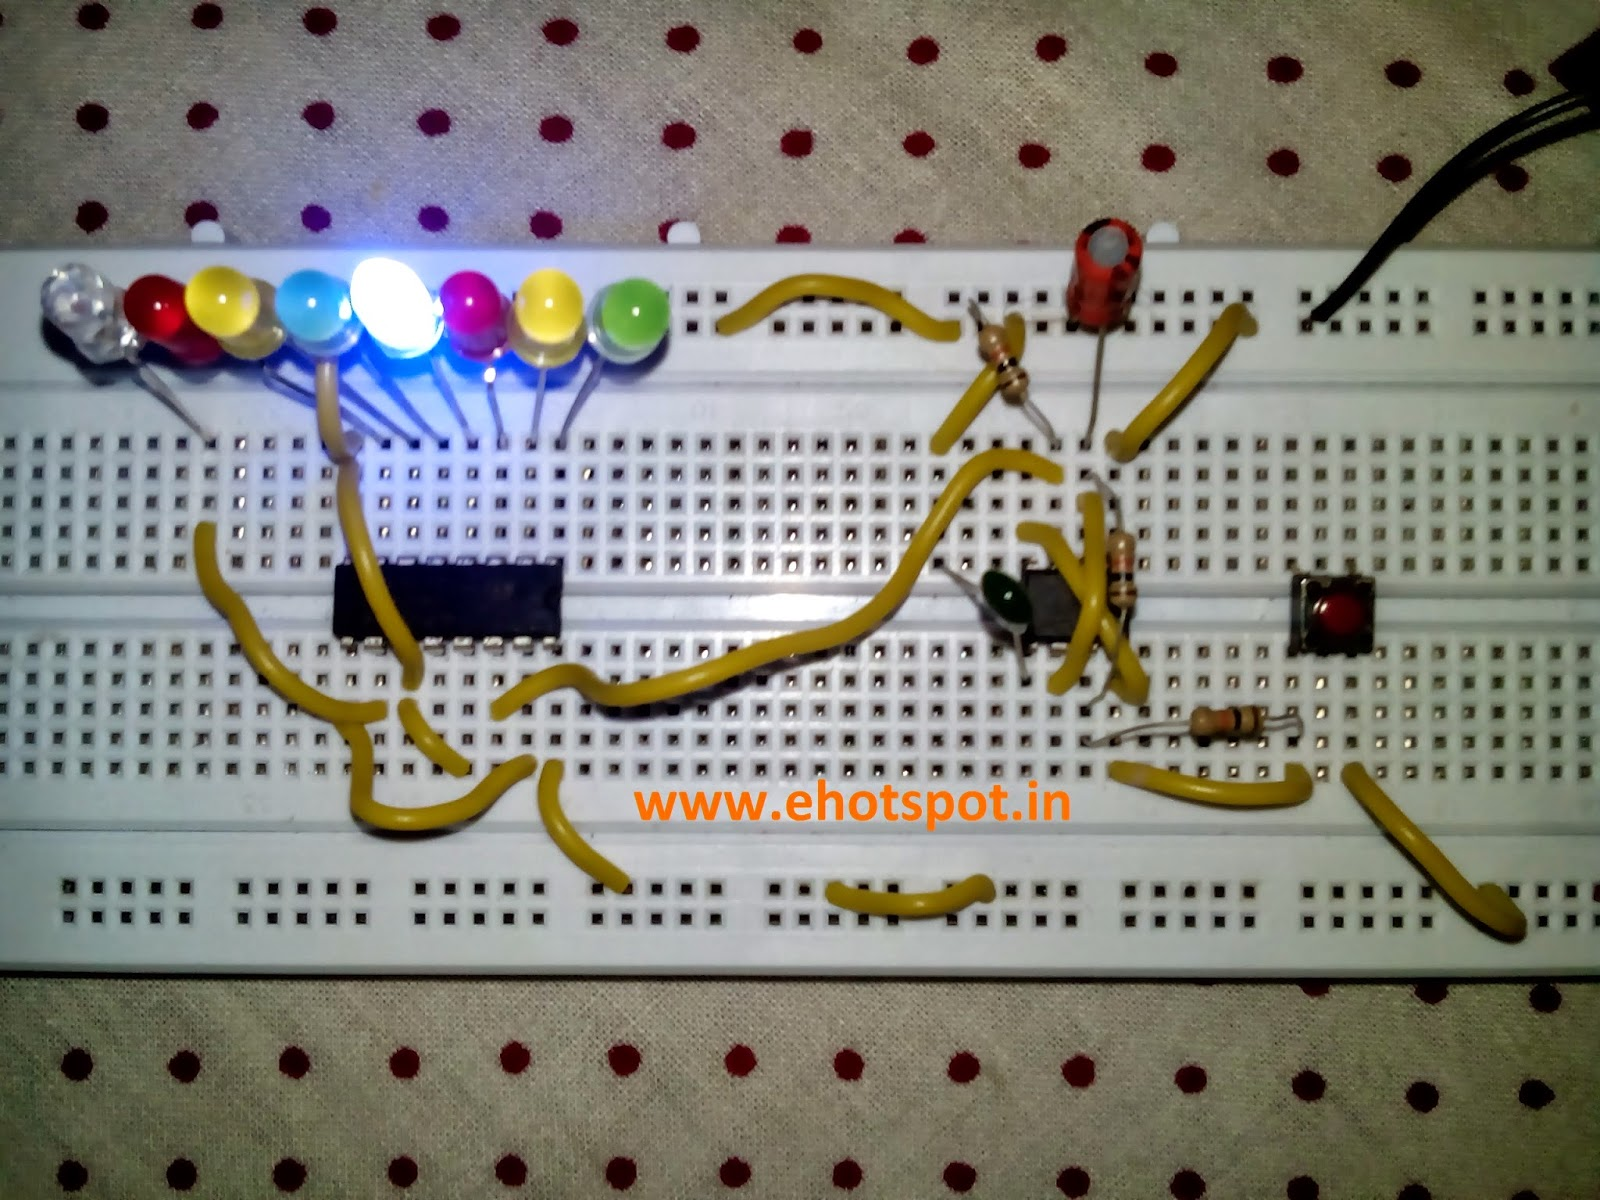 Electronic Cricket Match Game Using 555 Ic And Decade Counter 4017 Power On Delay Circuits By Also The Value Of Capacitor Pin 2 Can Be Changed To Higher 10uf Decrease Speed Sequential Led Flashing When Push Button Is